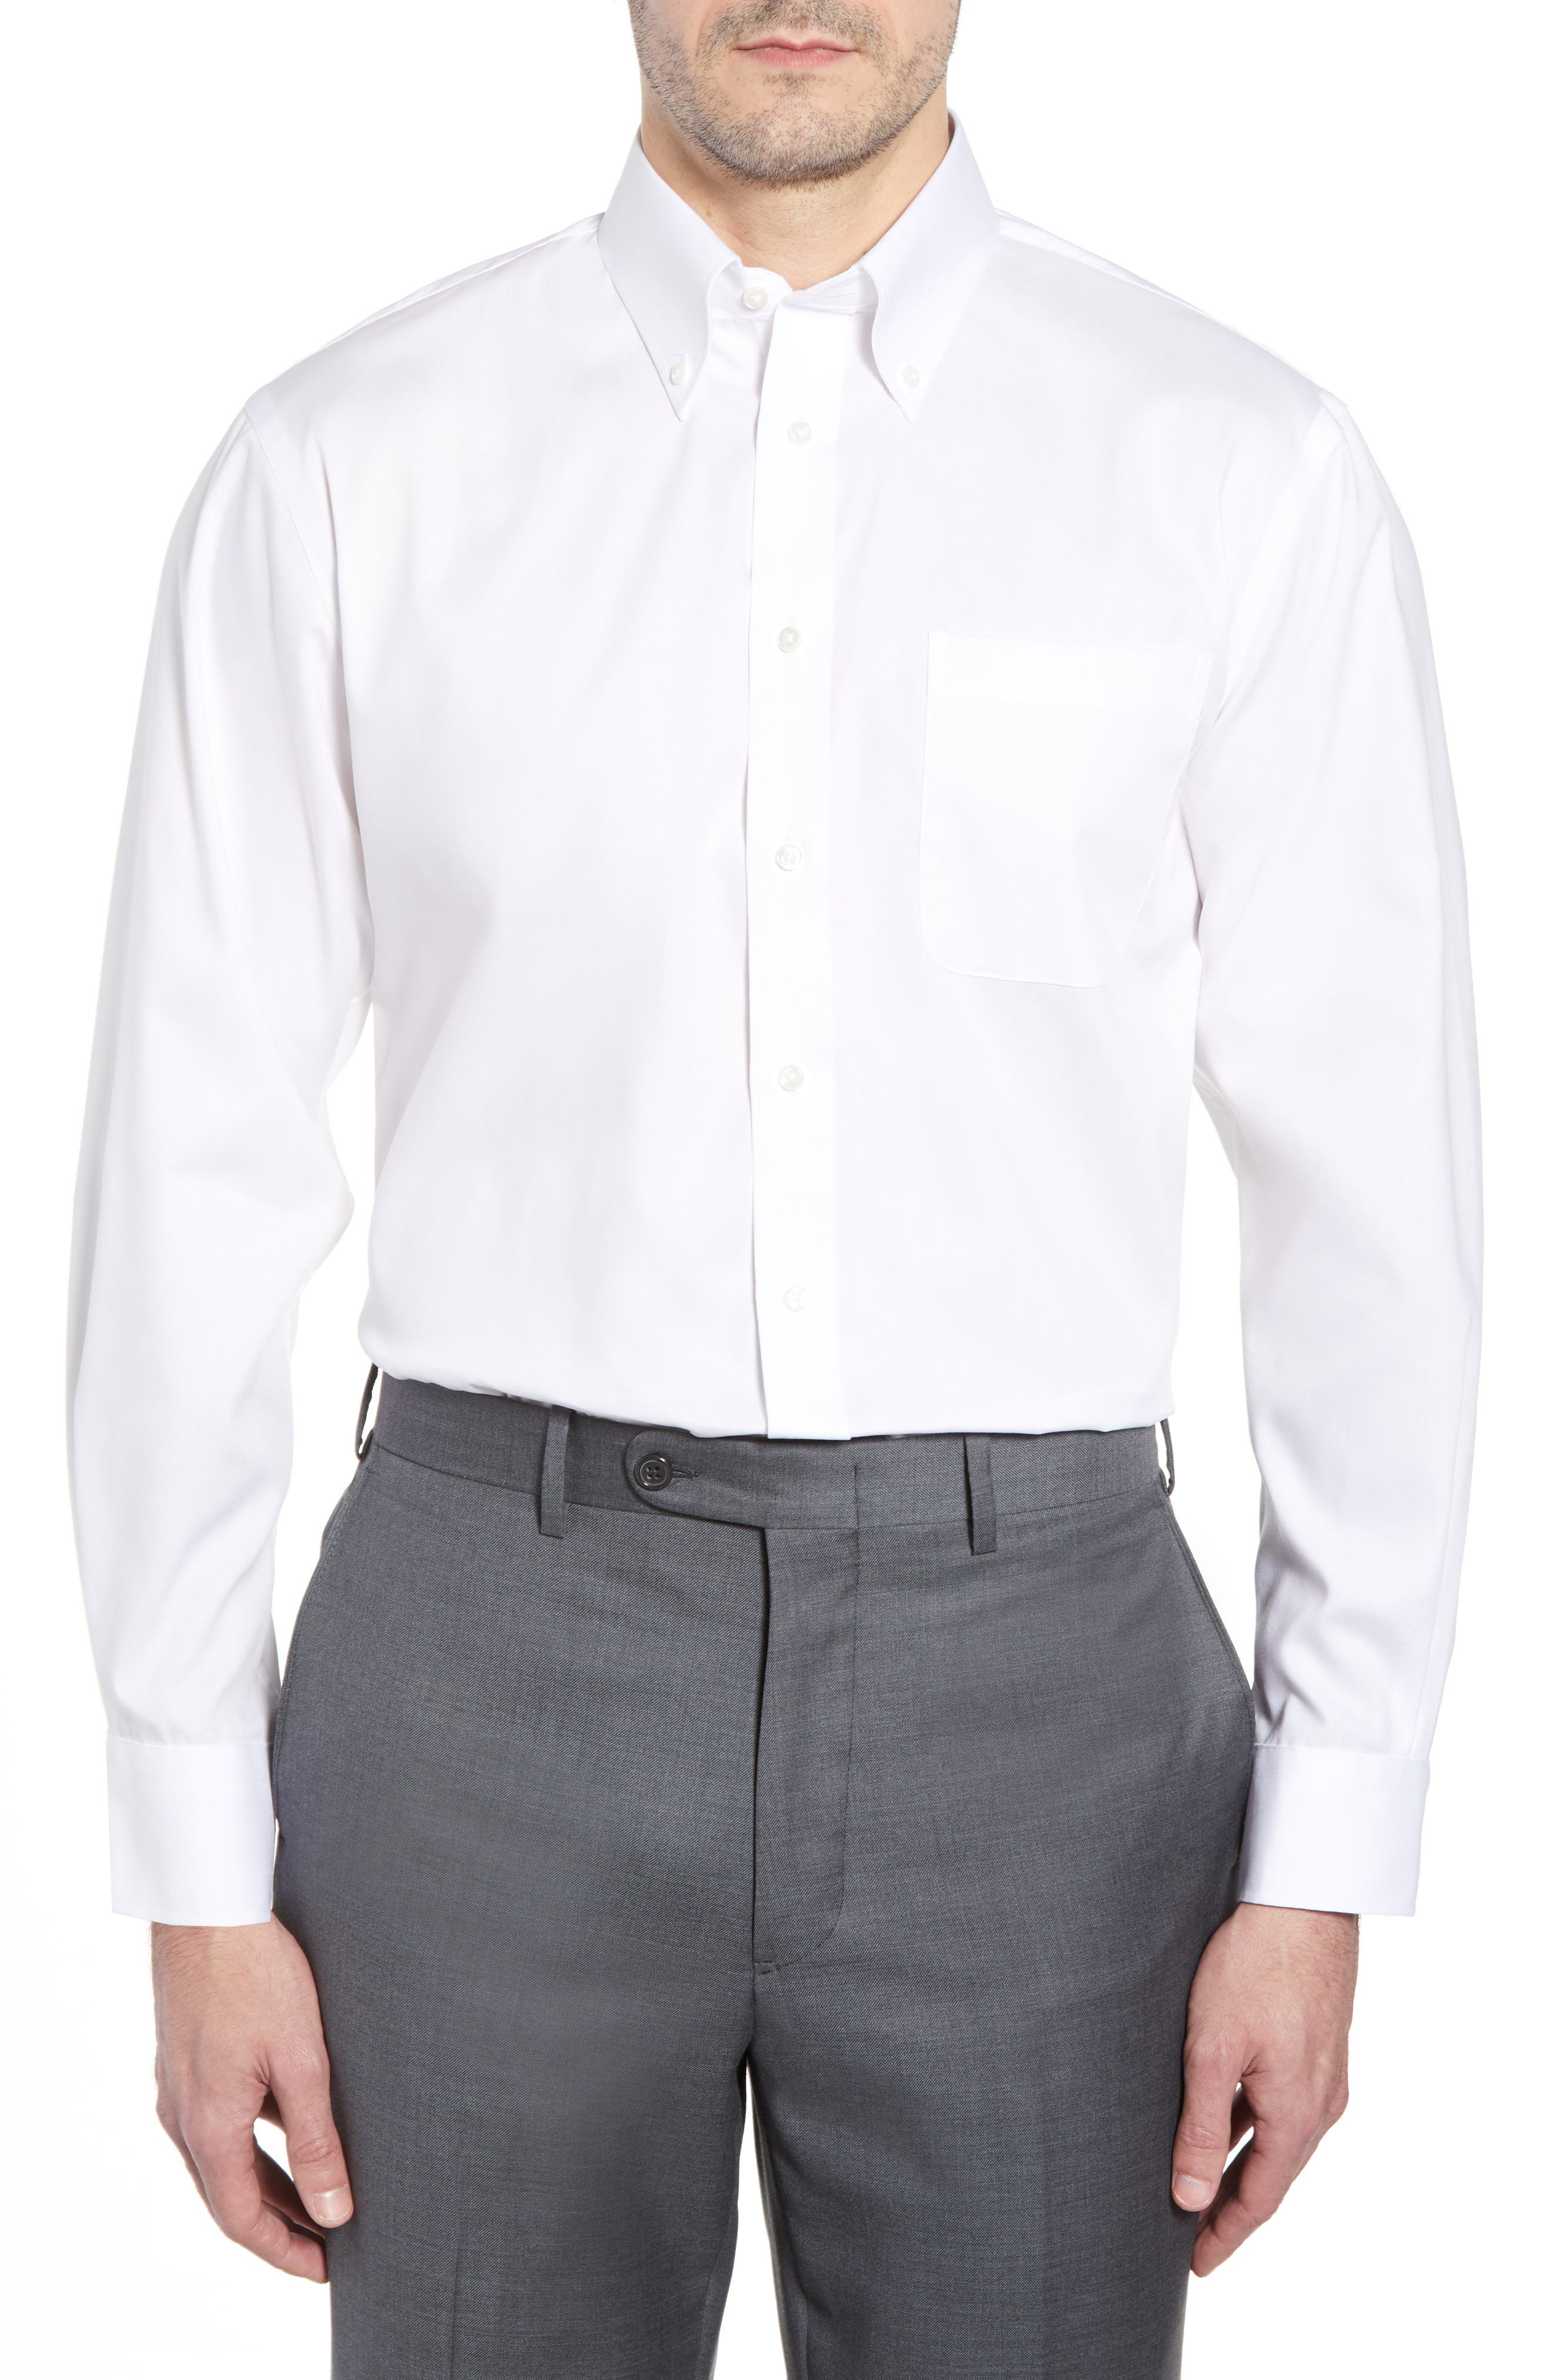 Grey and White Men's Dress Shirts